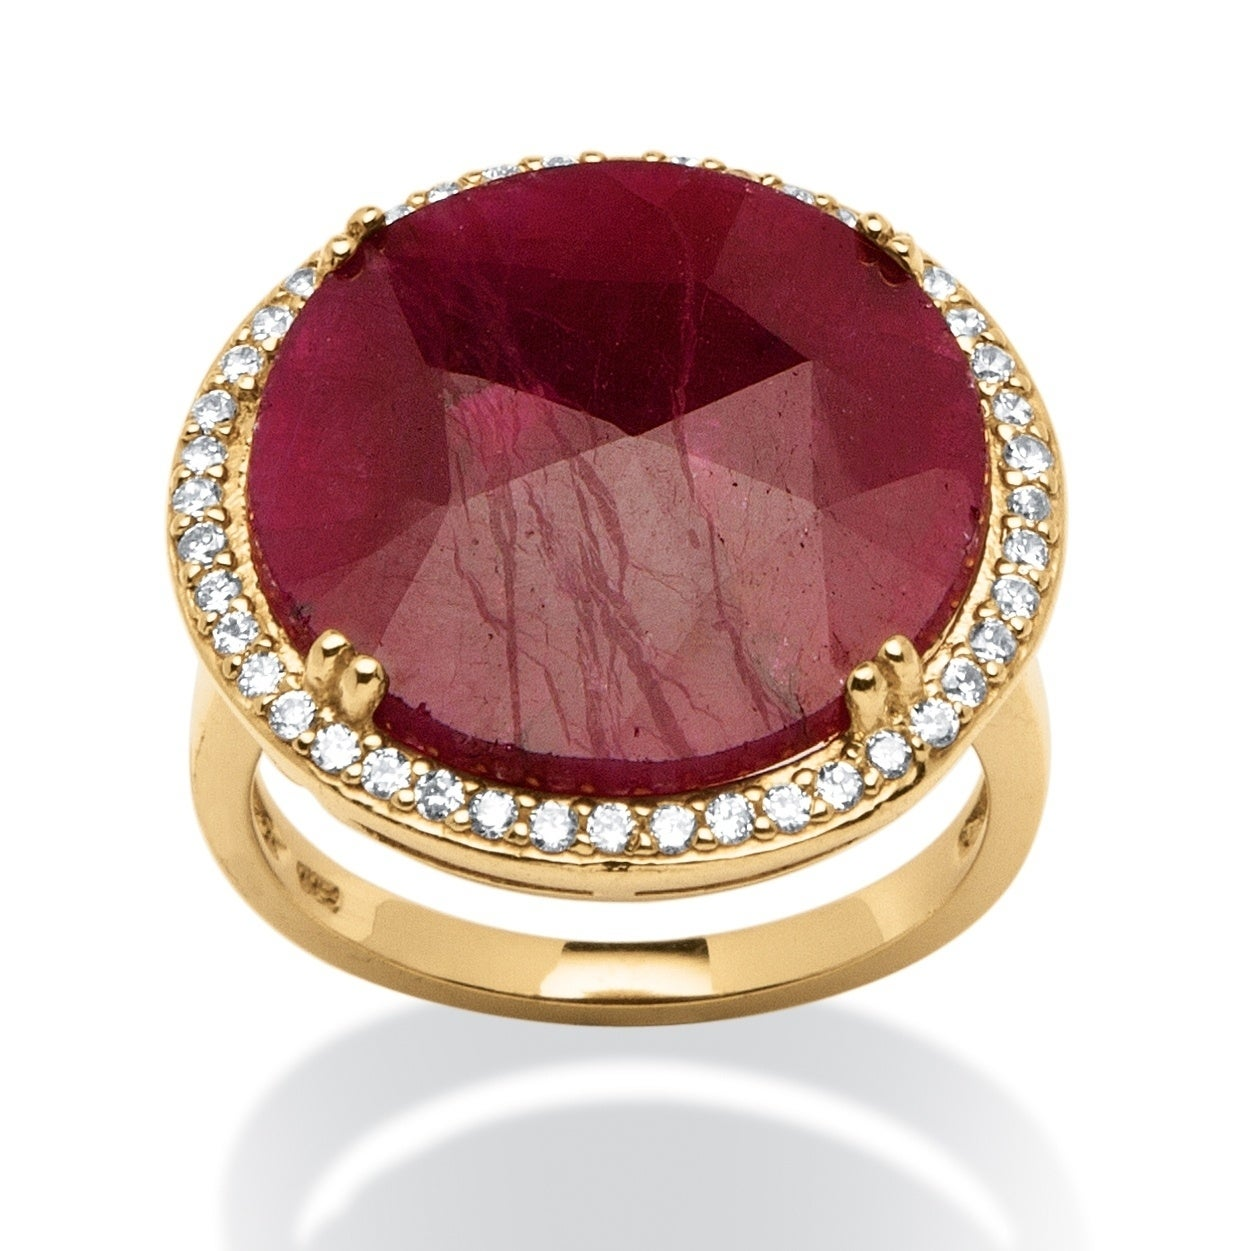 14K Yellow Gold Over Sterling Silver Emerald Cut Ruby Cocktail Party wear Diamond Ring Women